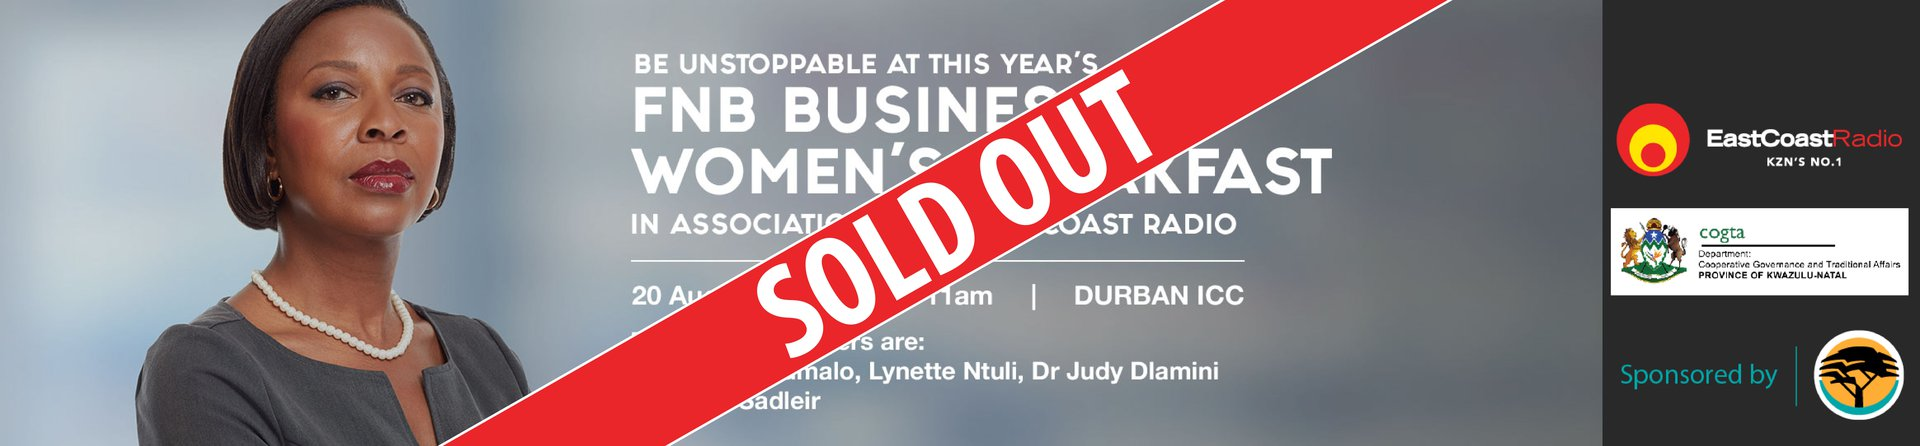 FNB Business Breakfast 2018_Cover Image for Web_NEW_SOLD OUT